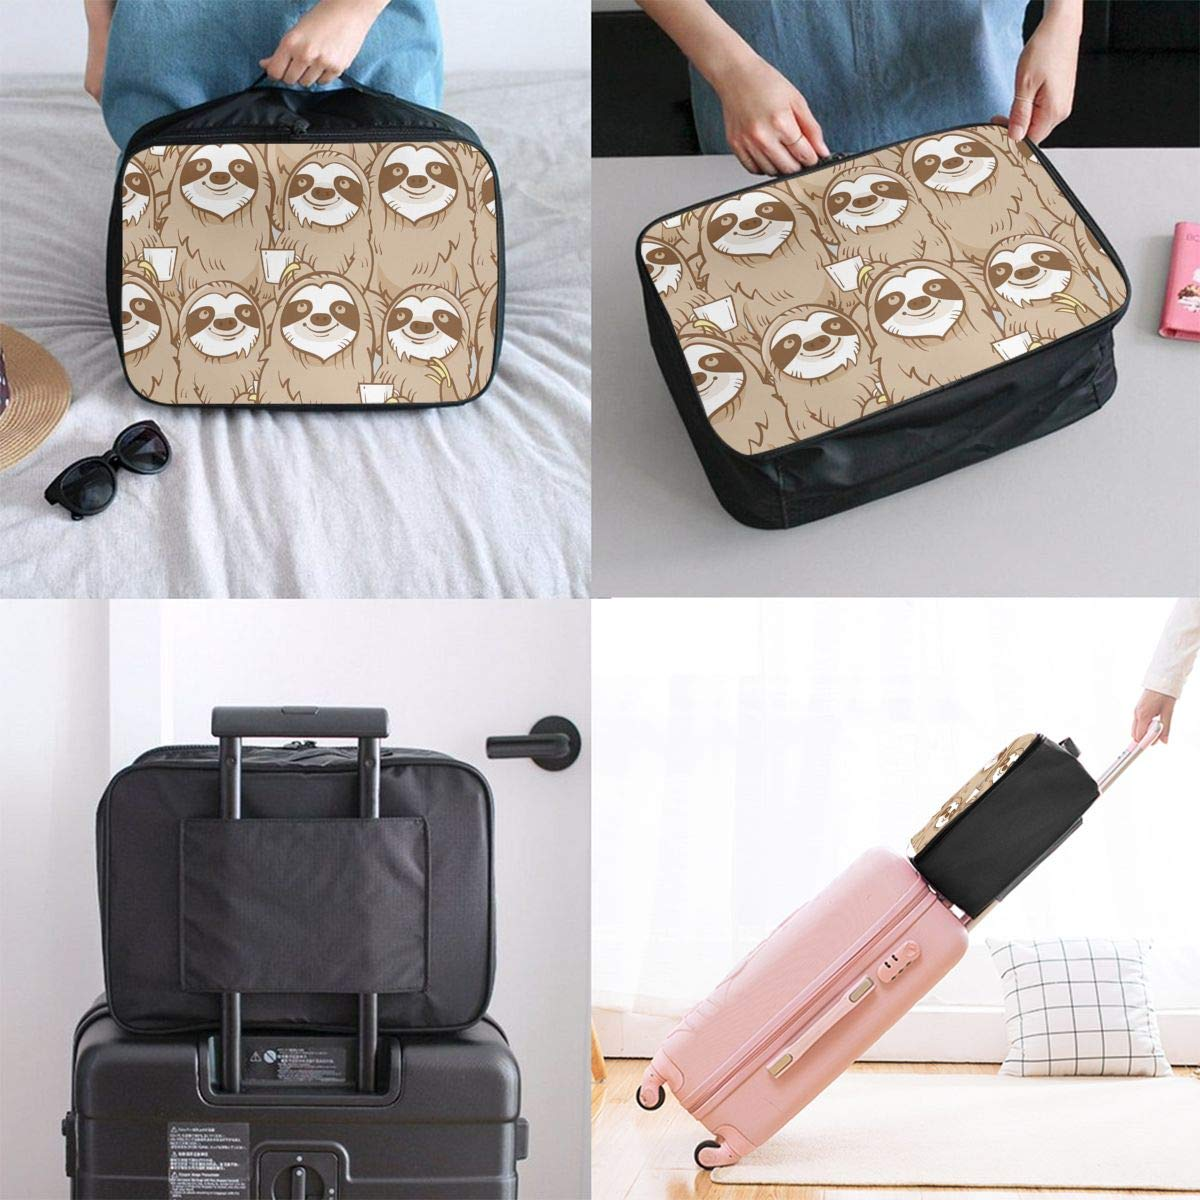 YueLJB Sloth Funny Faces Lightweight Large Capacity Portable Luggage Bag Travel Duffel Bag Storage Carry Luggage Duffle Tote Bag